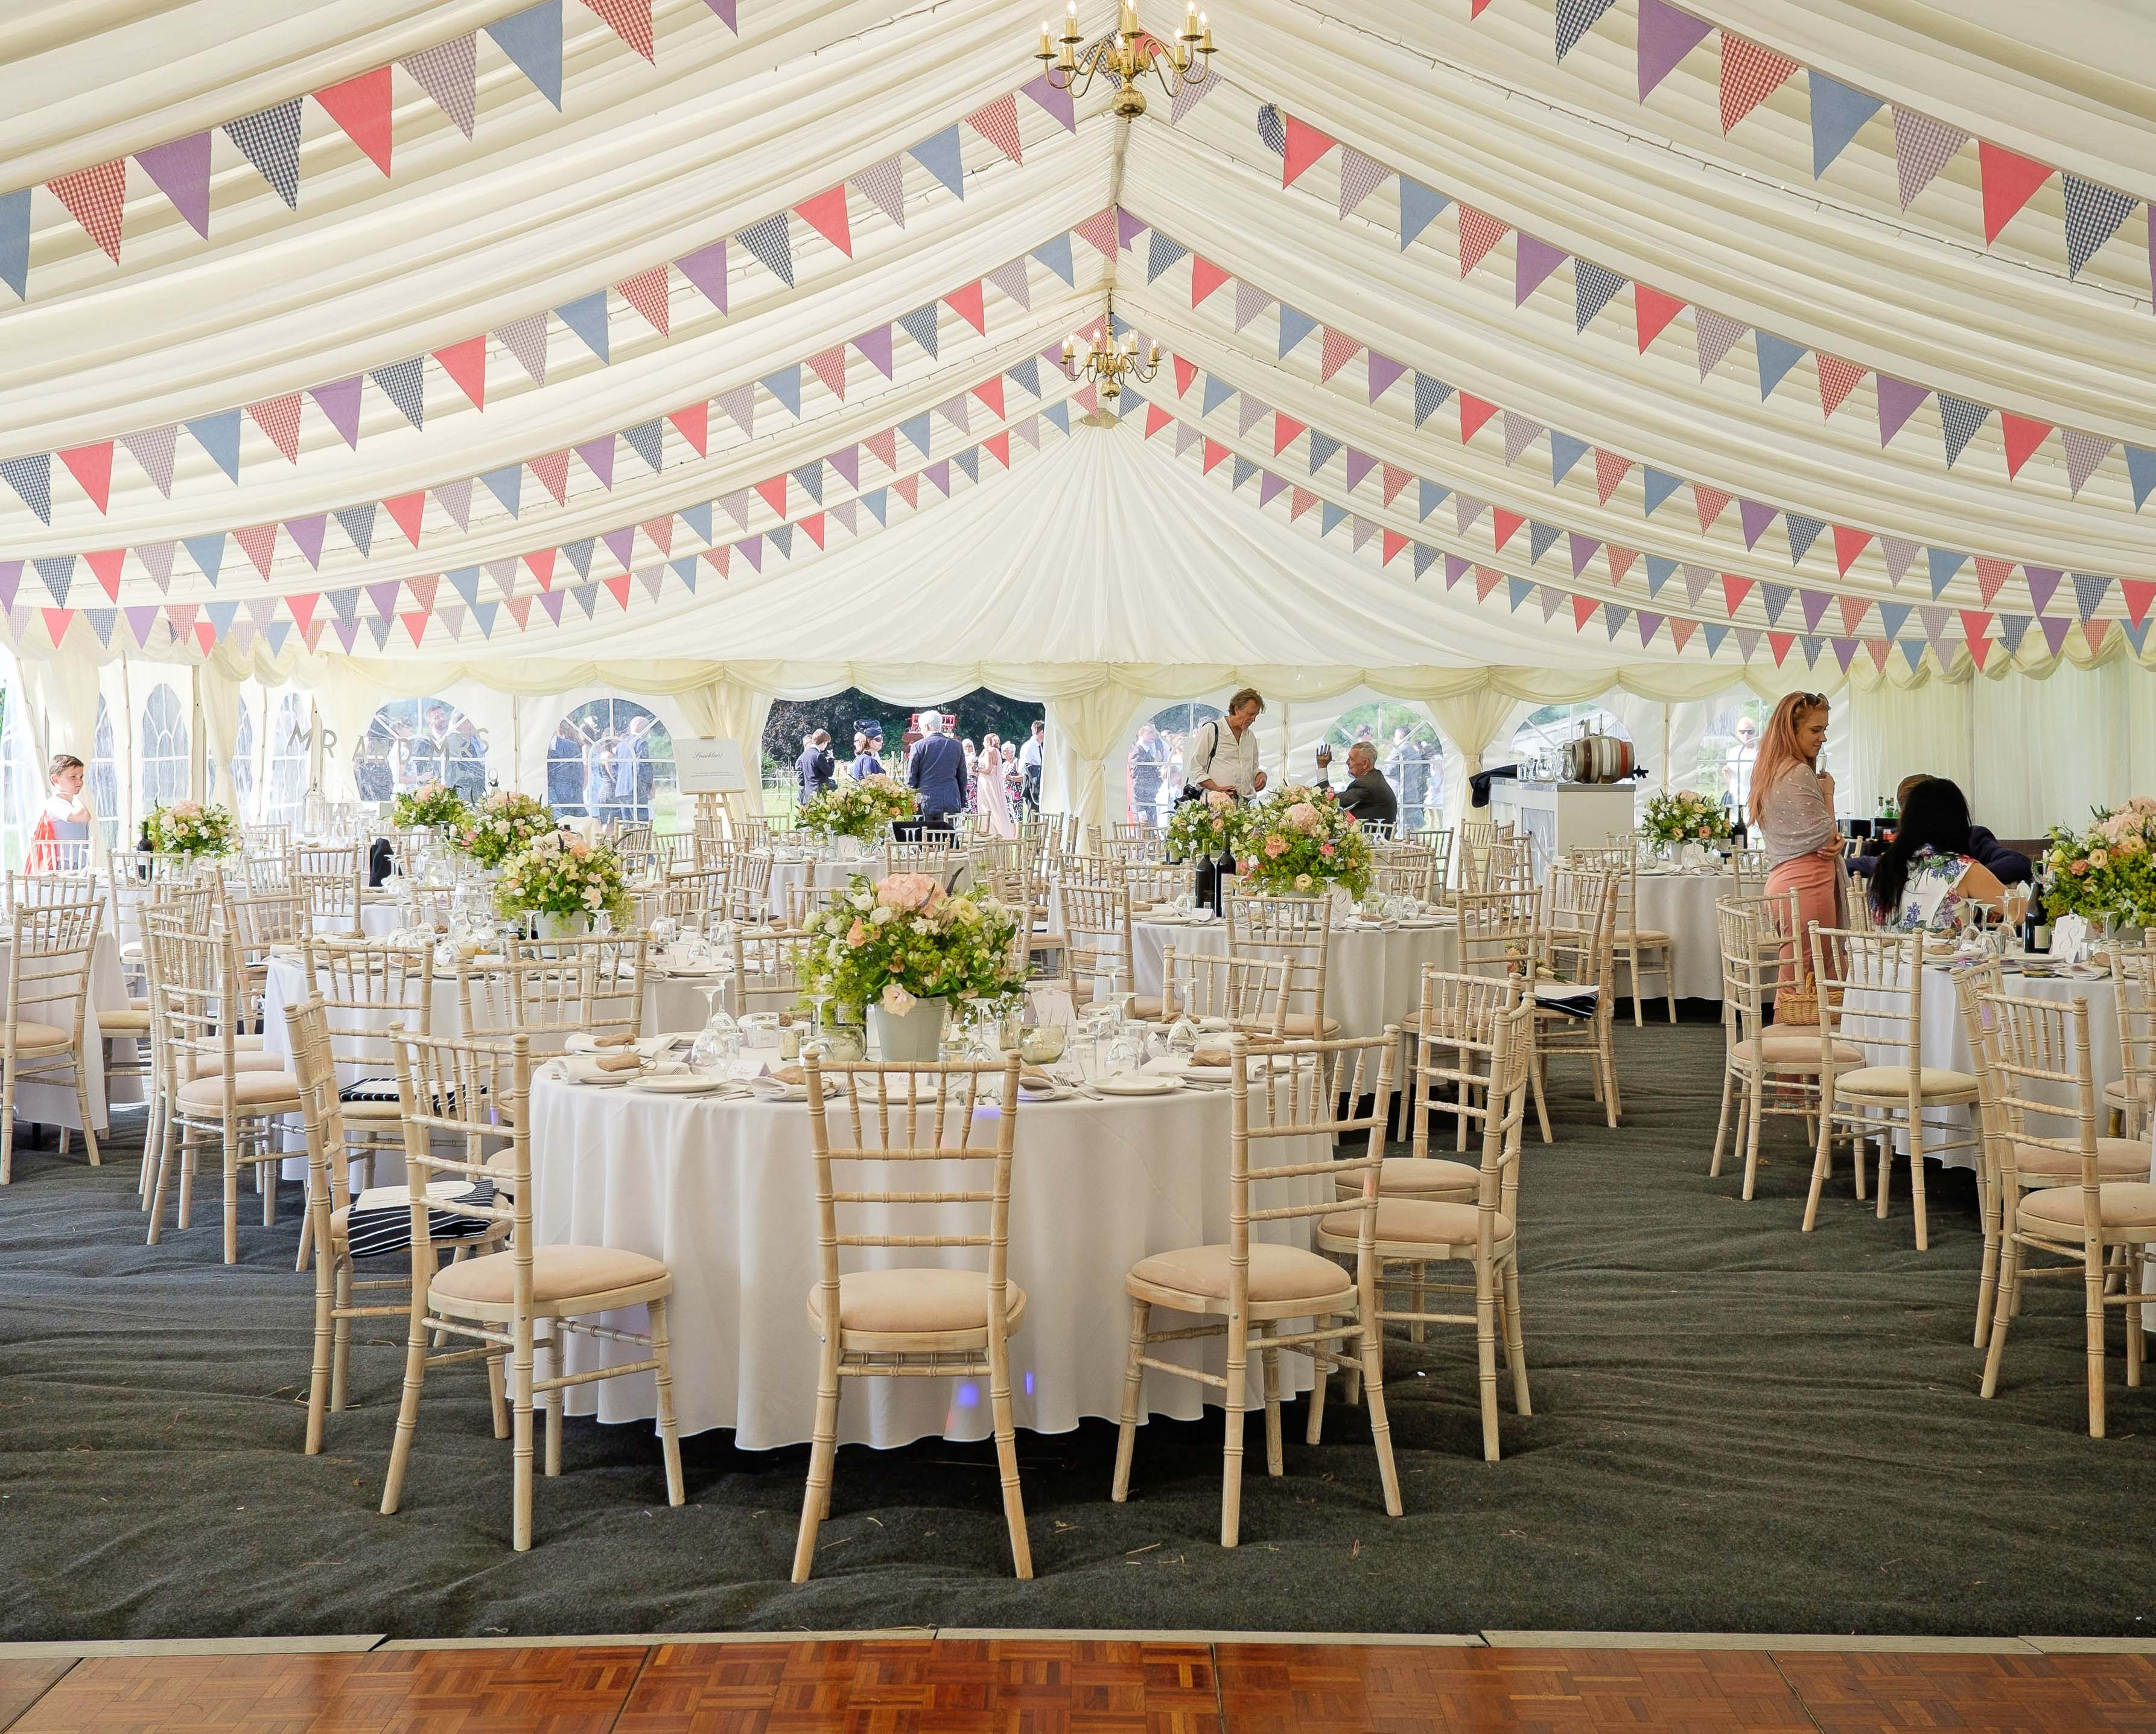 Marquee hire image